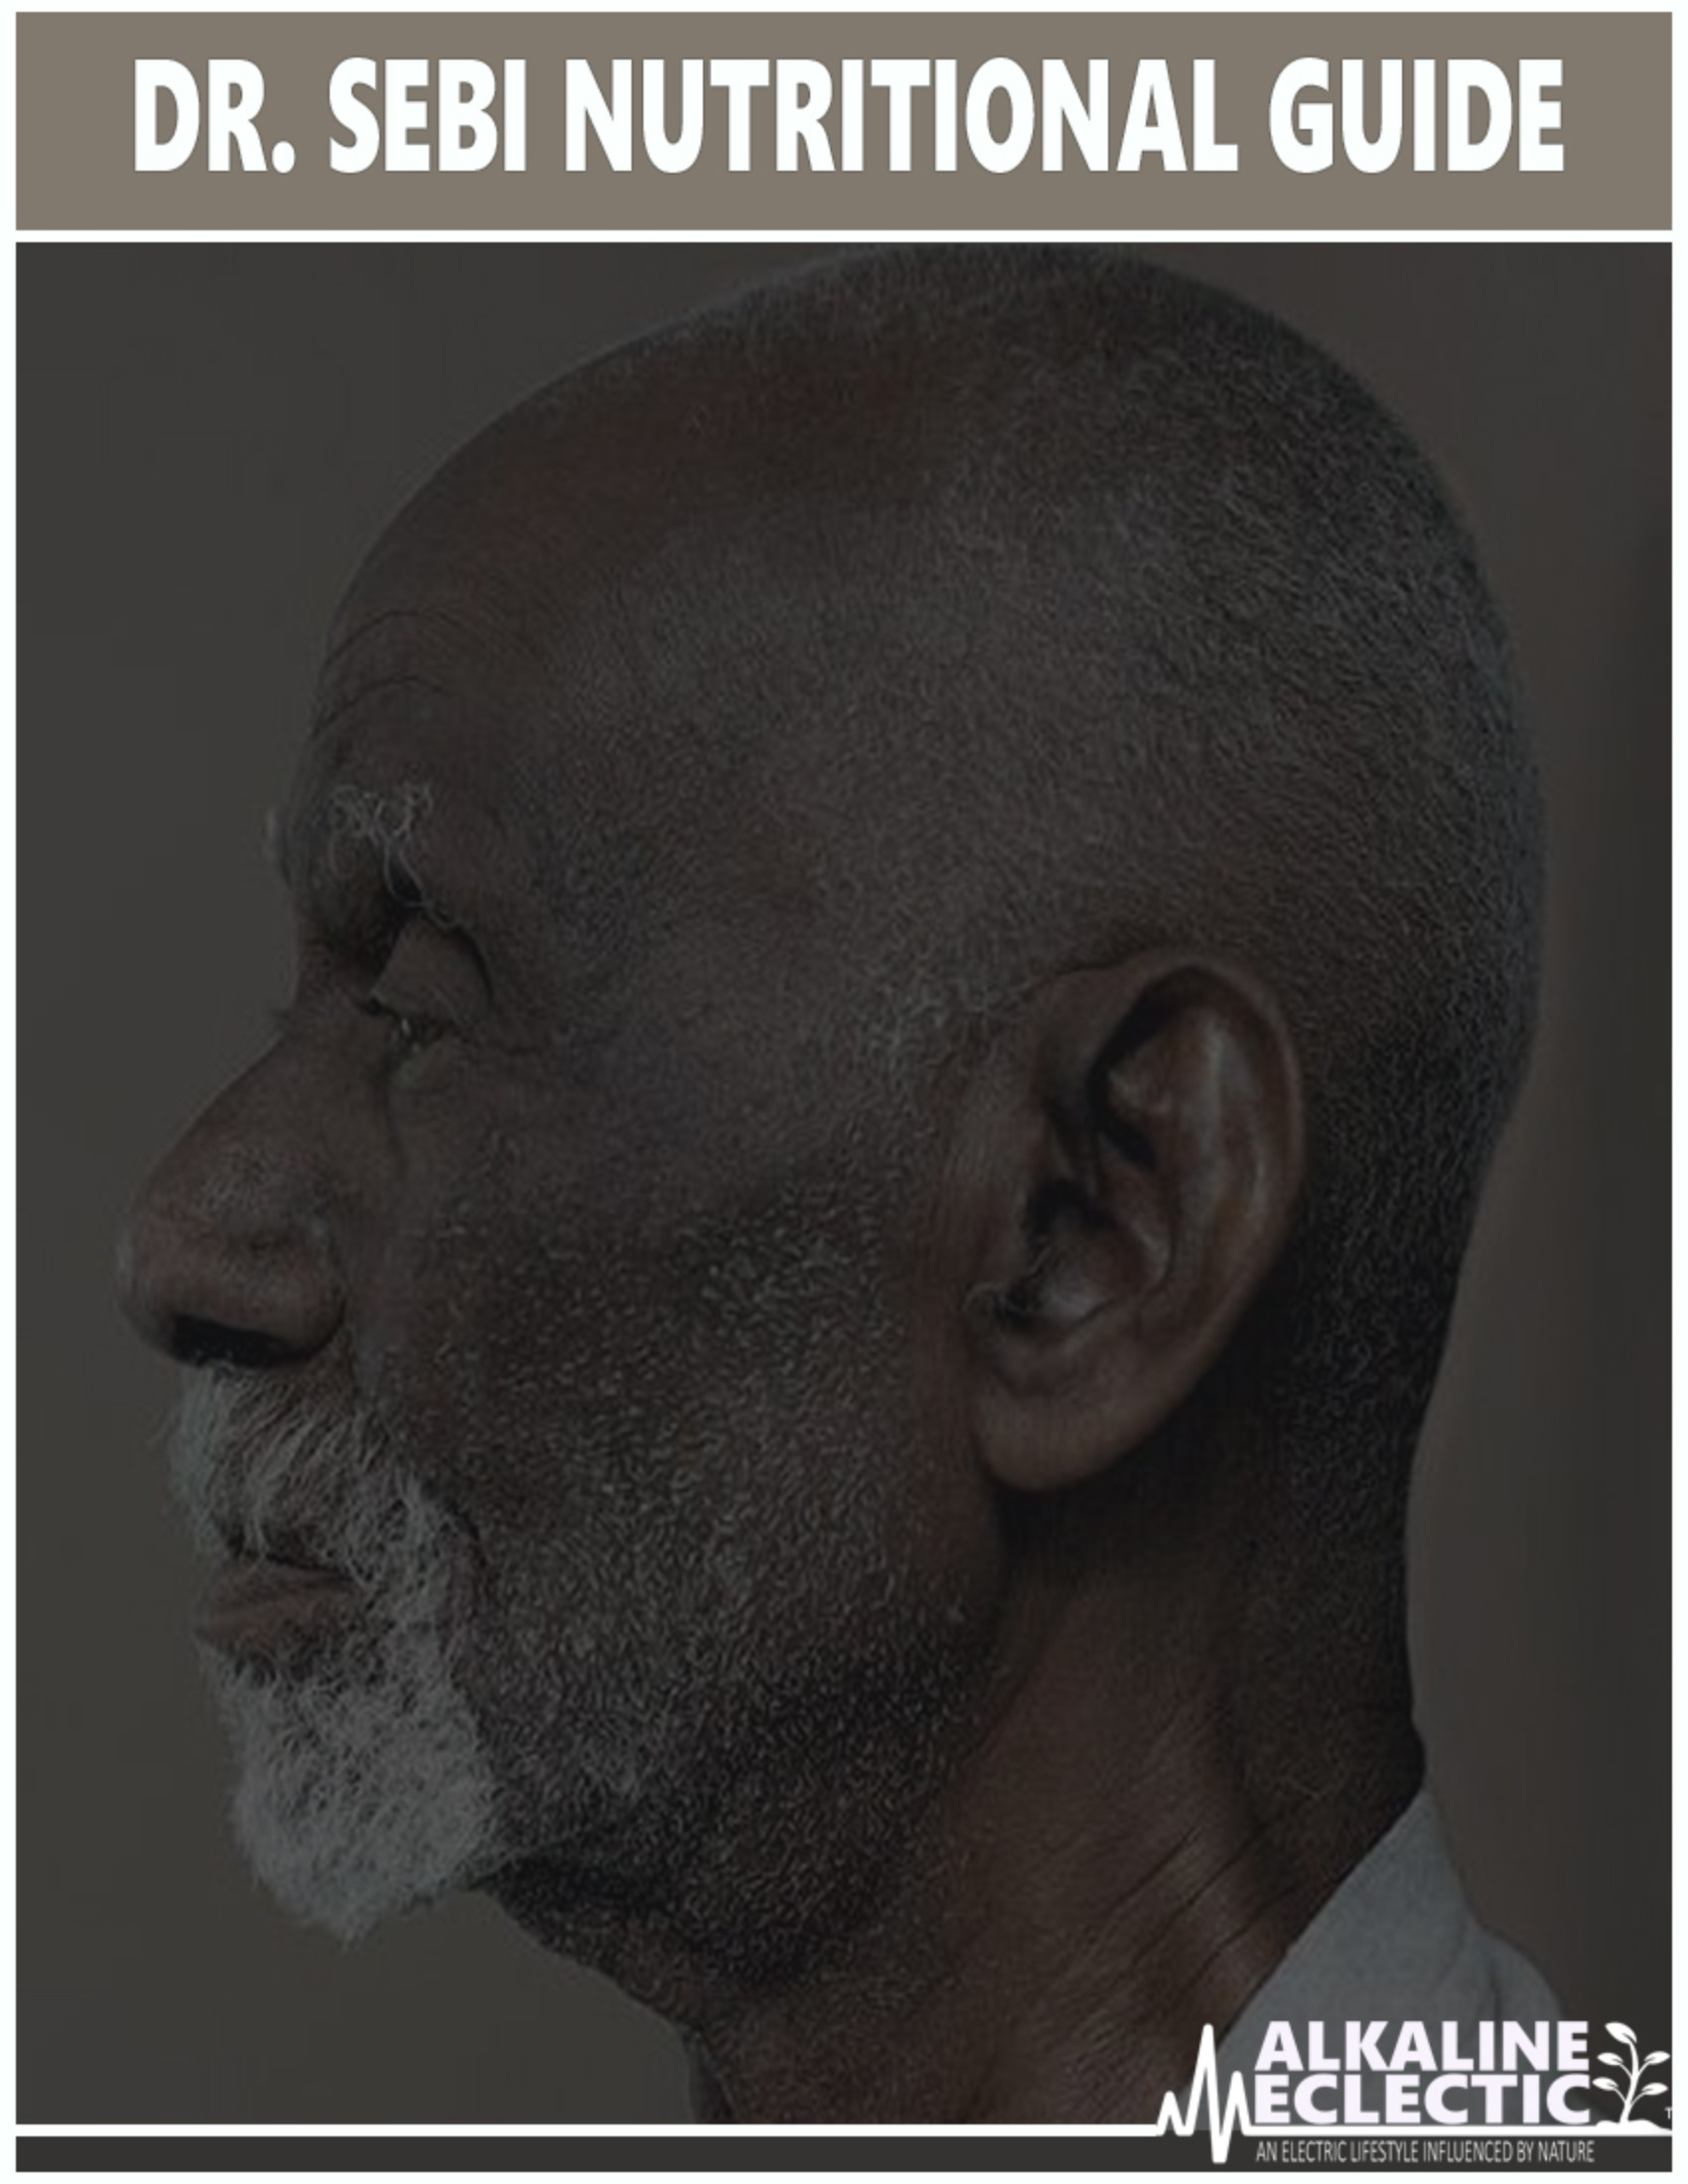 DR. SEBI ALKALINE ECLECTIC NUTRITIONAL GUIDE FREE